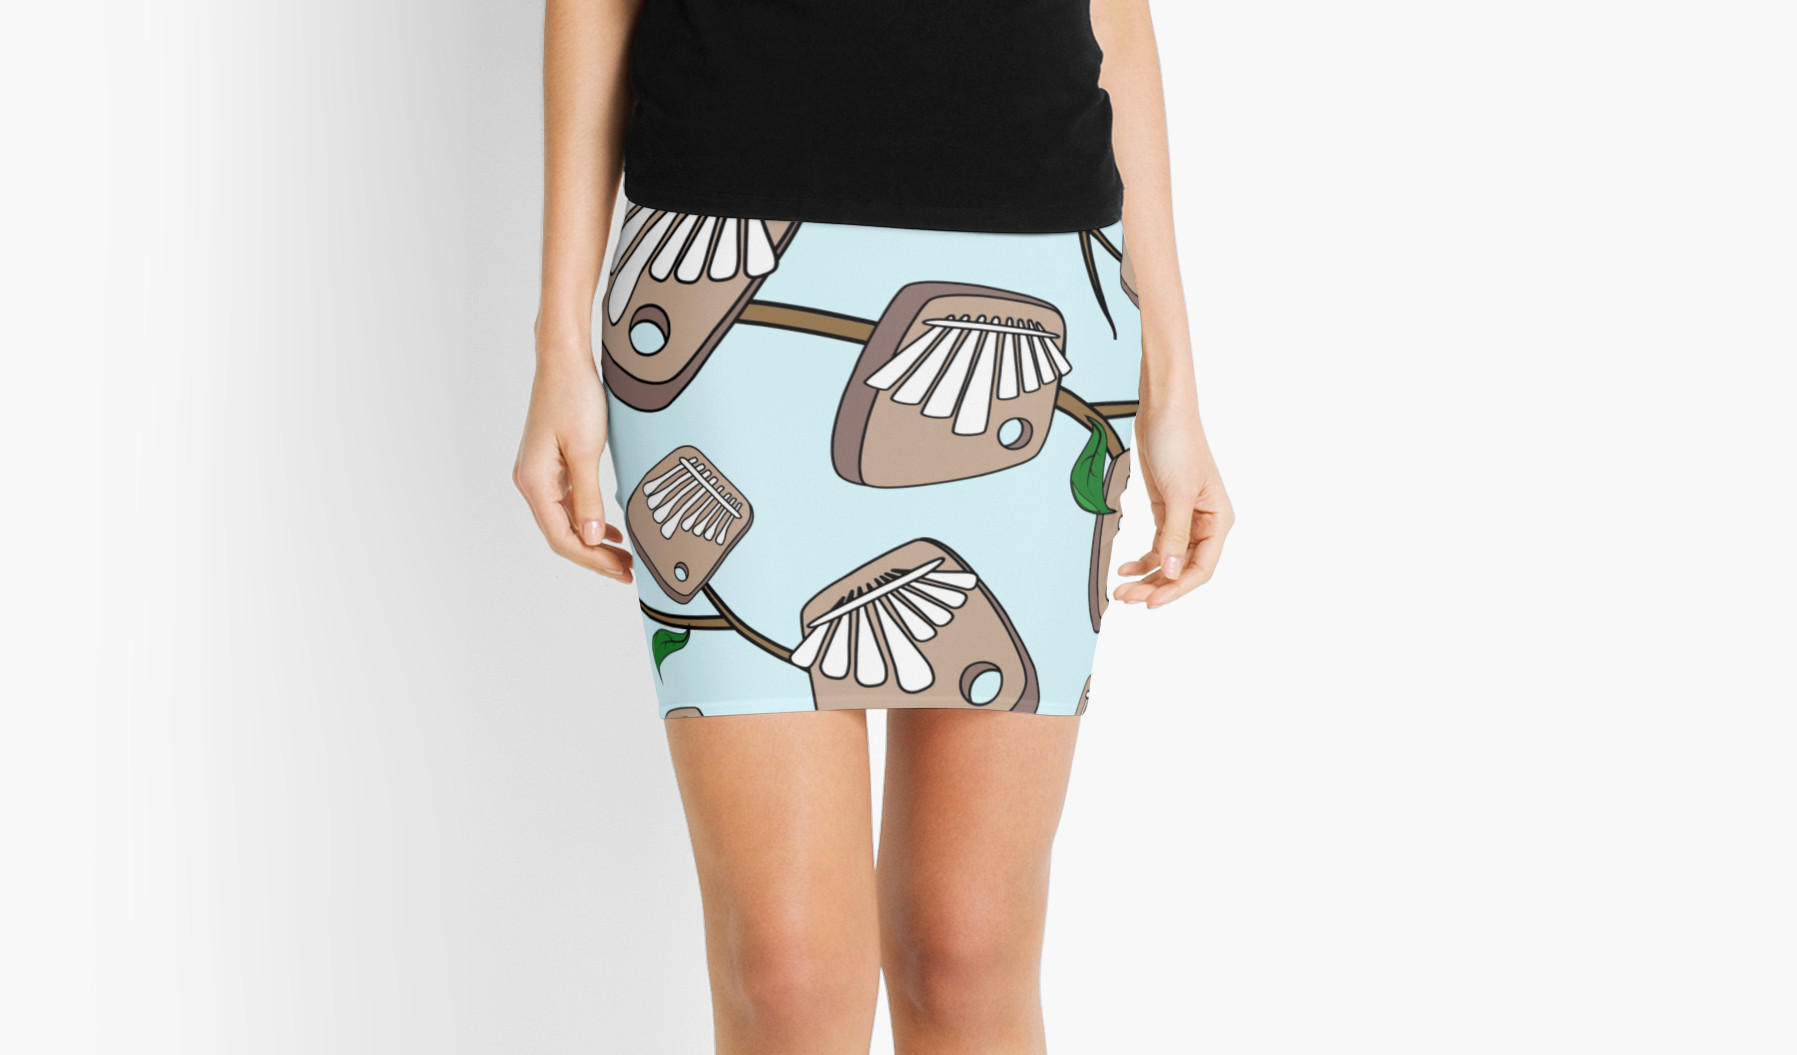 mira-tree-pencil-skirt.jpg